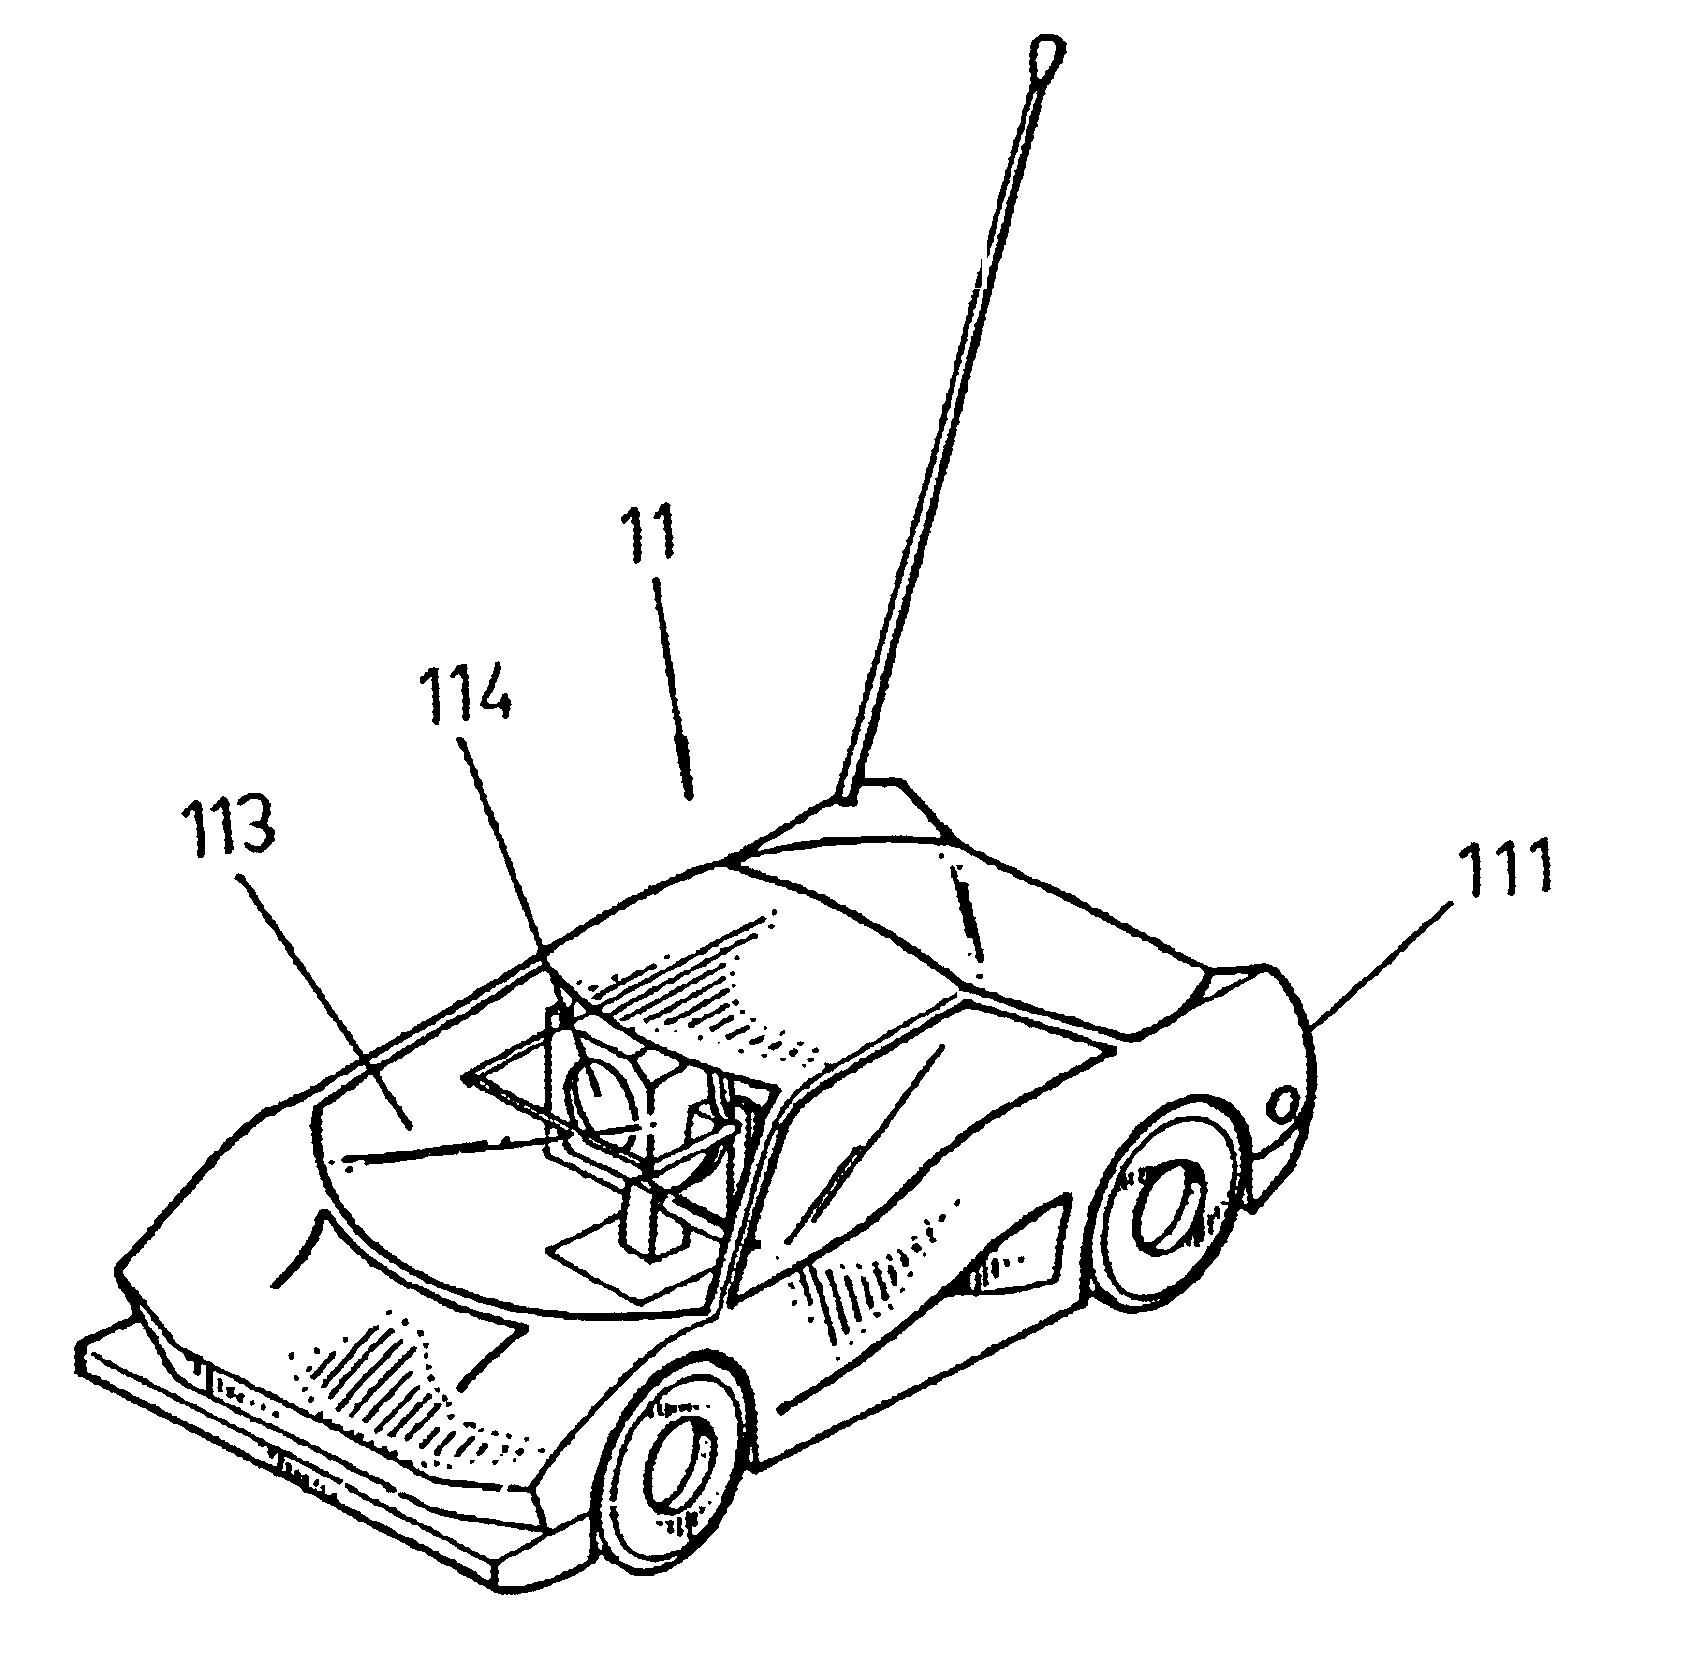 patent us6746304 - remote-control toy car set